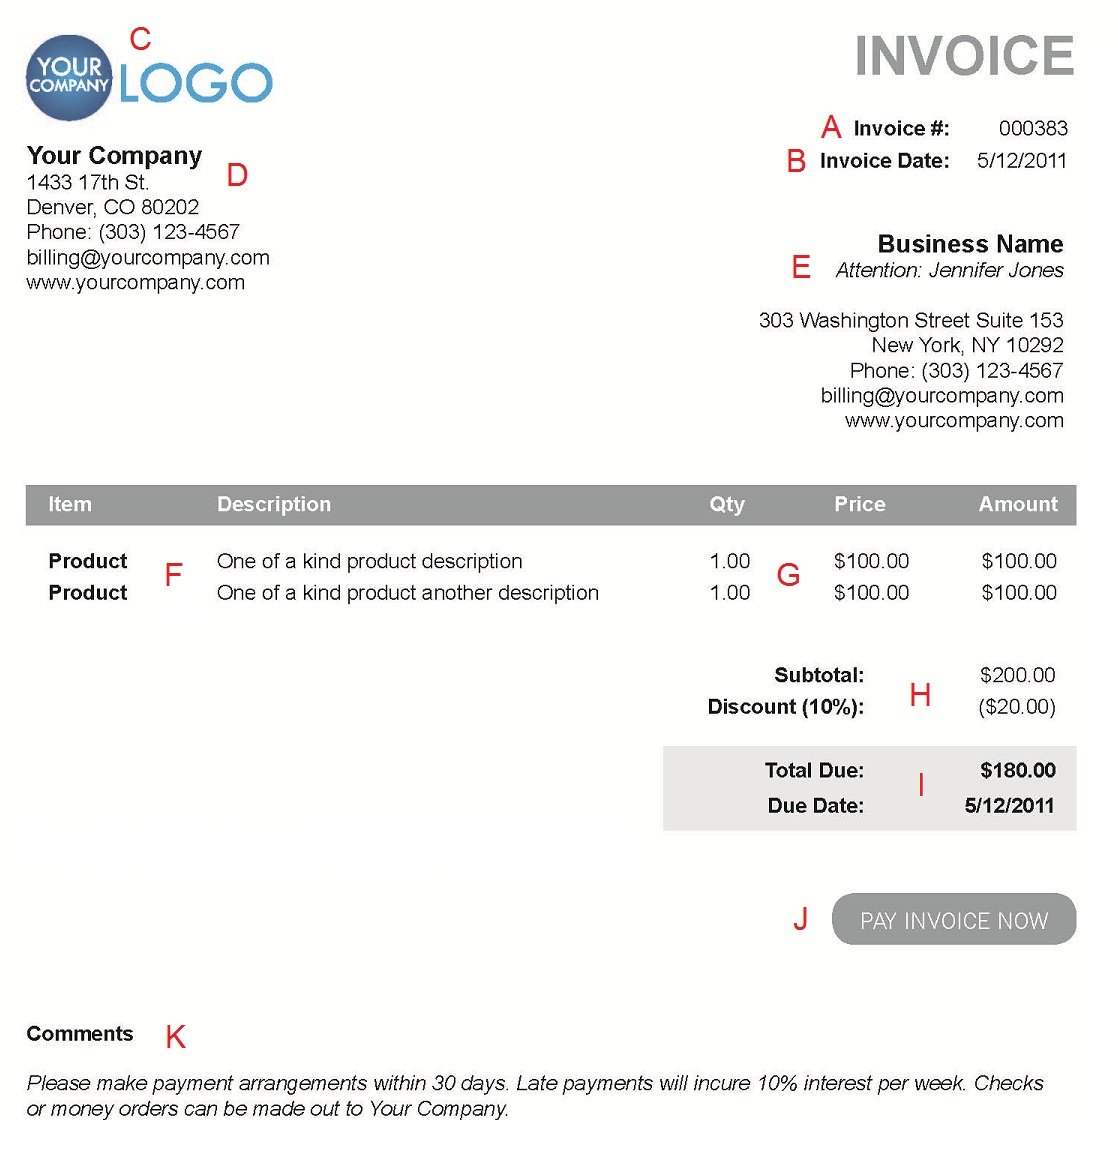 Imagerackus  Marvelous The  Different Sections Of An Electronic Payment Invoice With Exquisite A  With Astounding Ato Invoice Template Also Pre Printed Invoice Books In Addition Design Your Own Invoice And Sales Tax Invoice As Well As Payment Upon Receipt Of Invoice Additionally Payment Of Invoices Within  Days From Paysimplecom With Imagerackus  Exquisite The  Different Sections Of An Electronic Payment Invoice With Astounding A  And Marvelous Ato Invoice Template Also Pre Printed Invoice Books In Addition Design Your Own Invoice From Paysimplecom